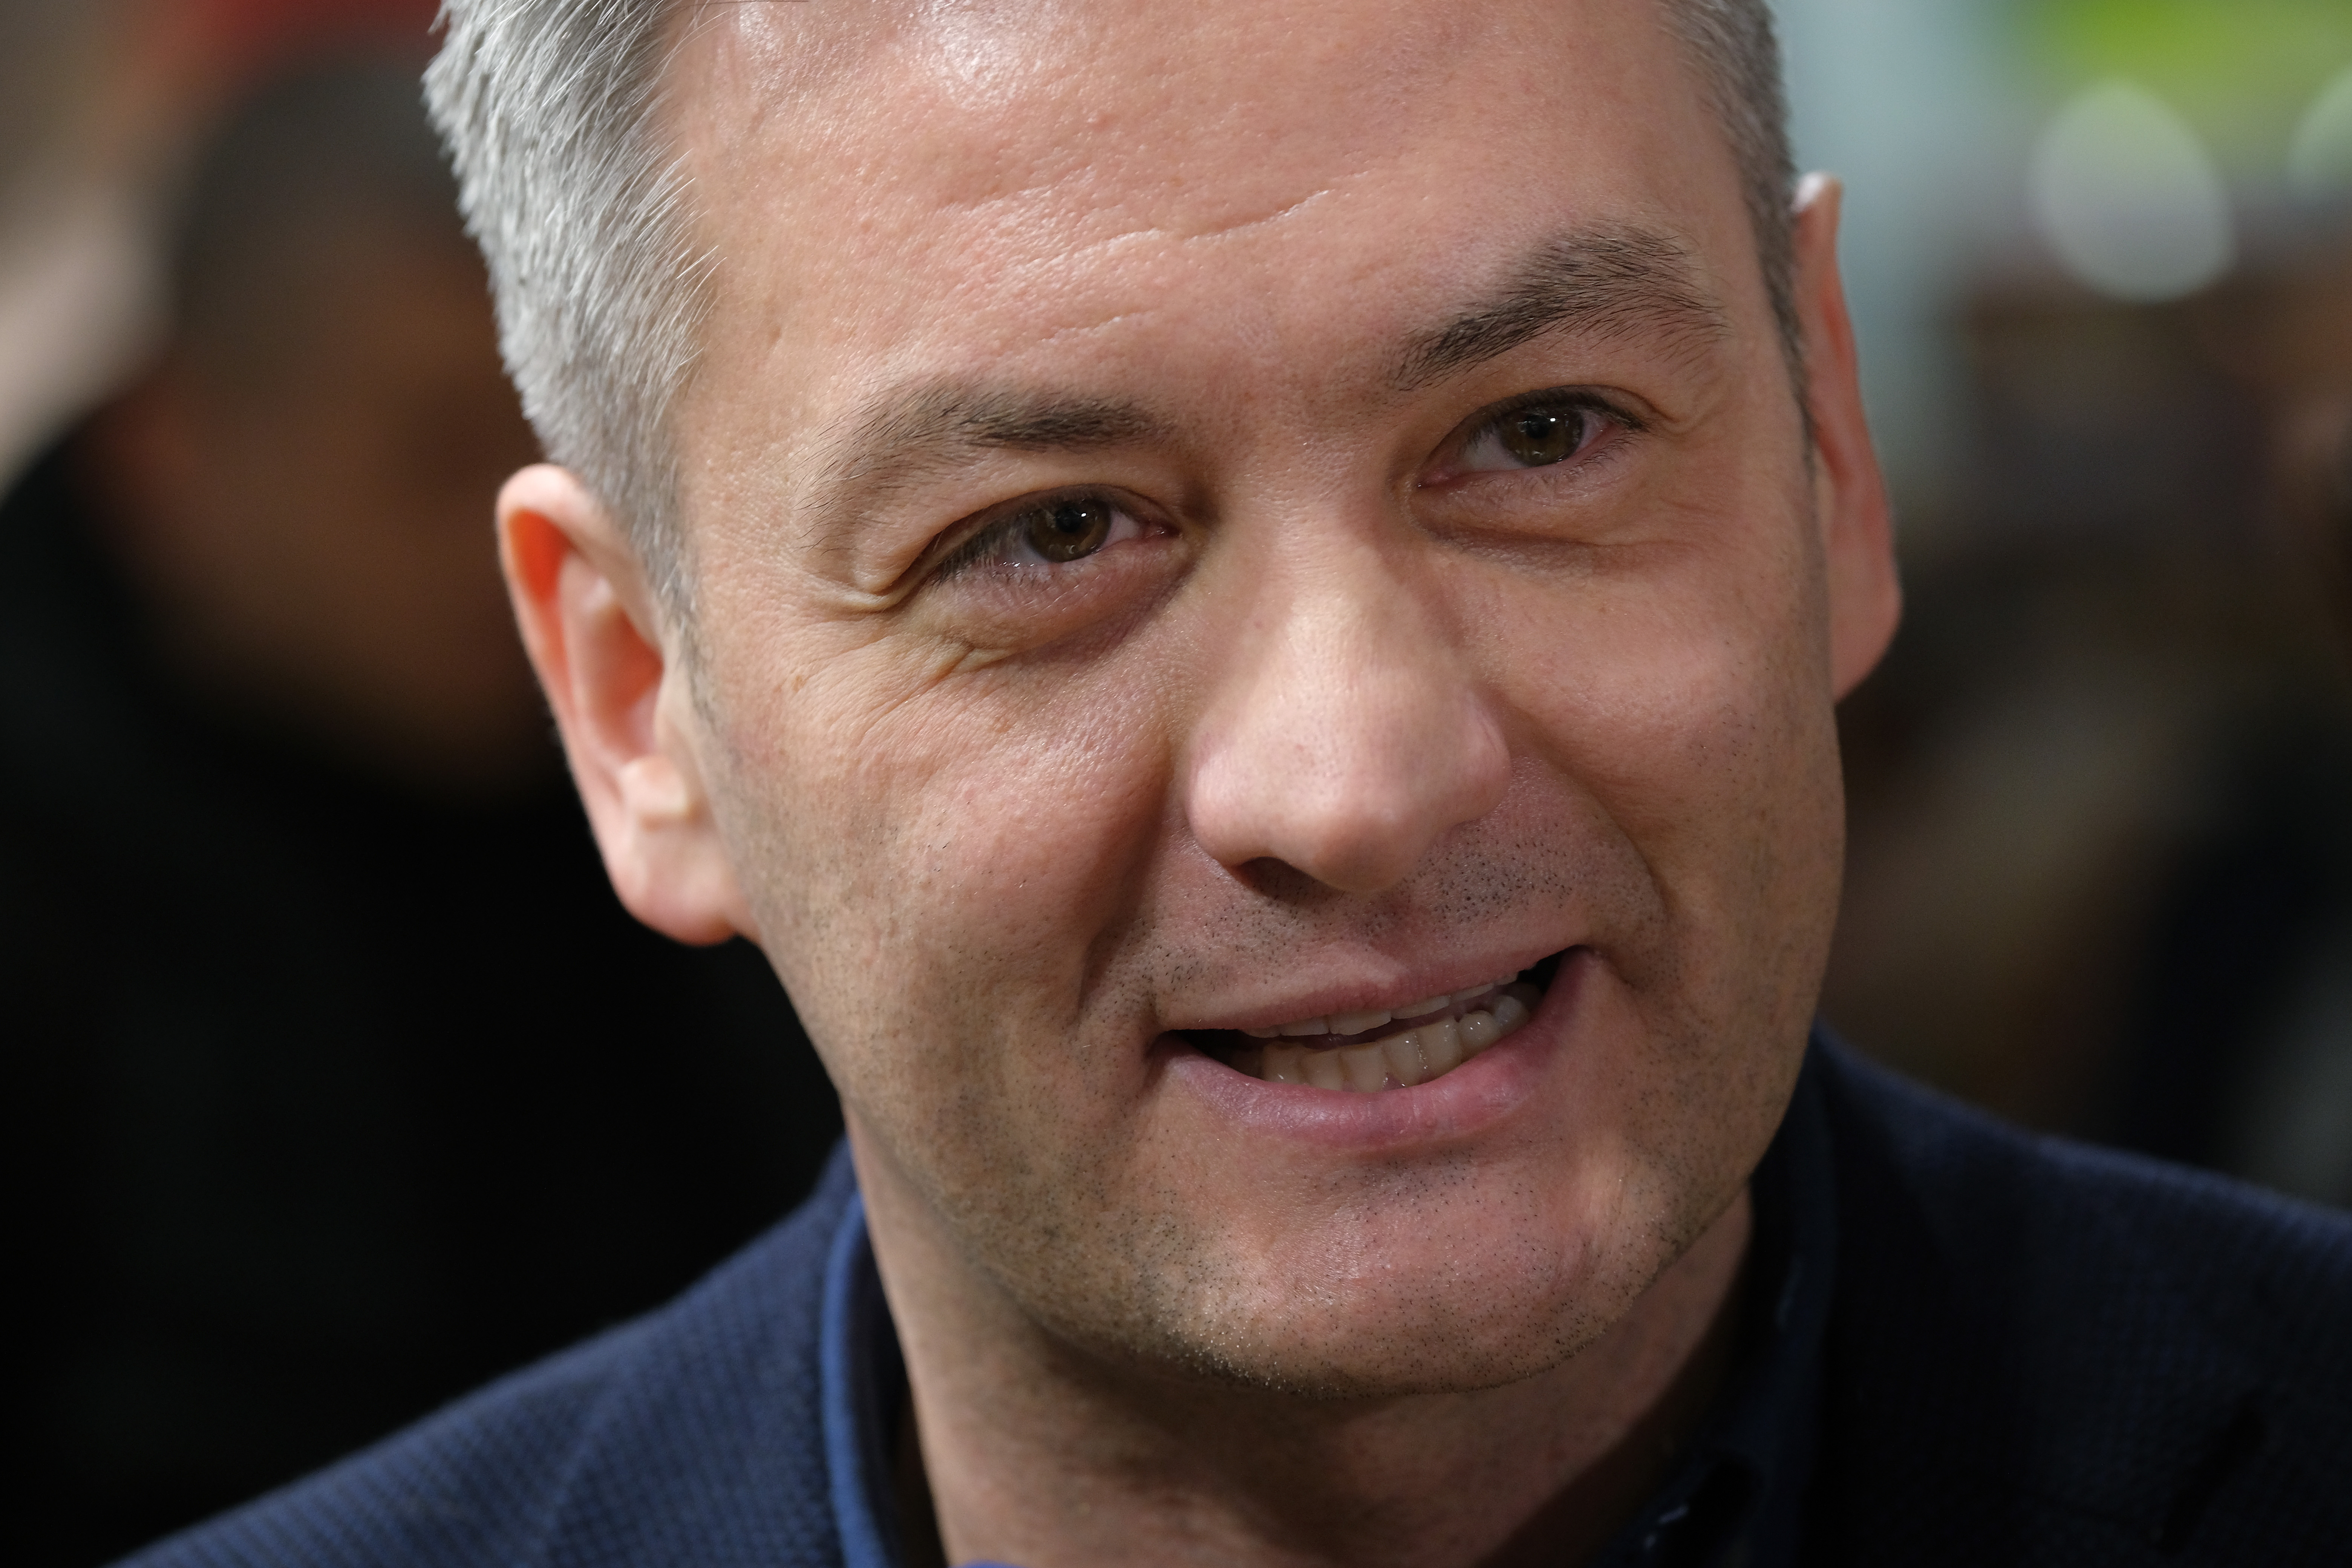 Liberal, pro-European, openly gay Polish politician Robert Biedron is seen as a figure to counter the ruling, nationalist and conservative PiS party.